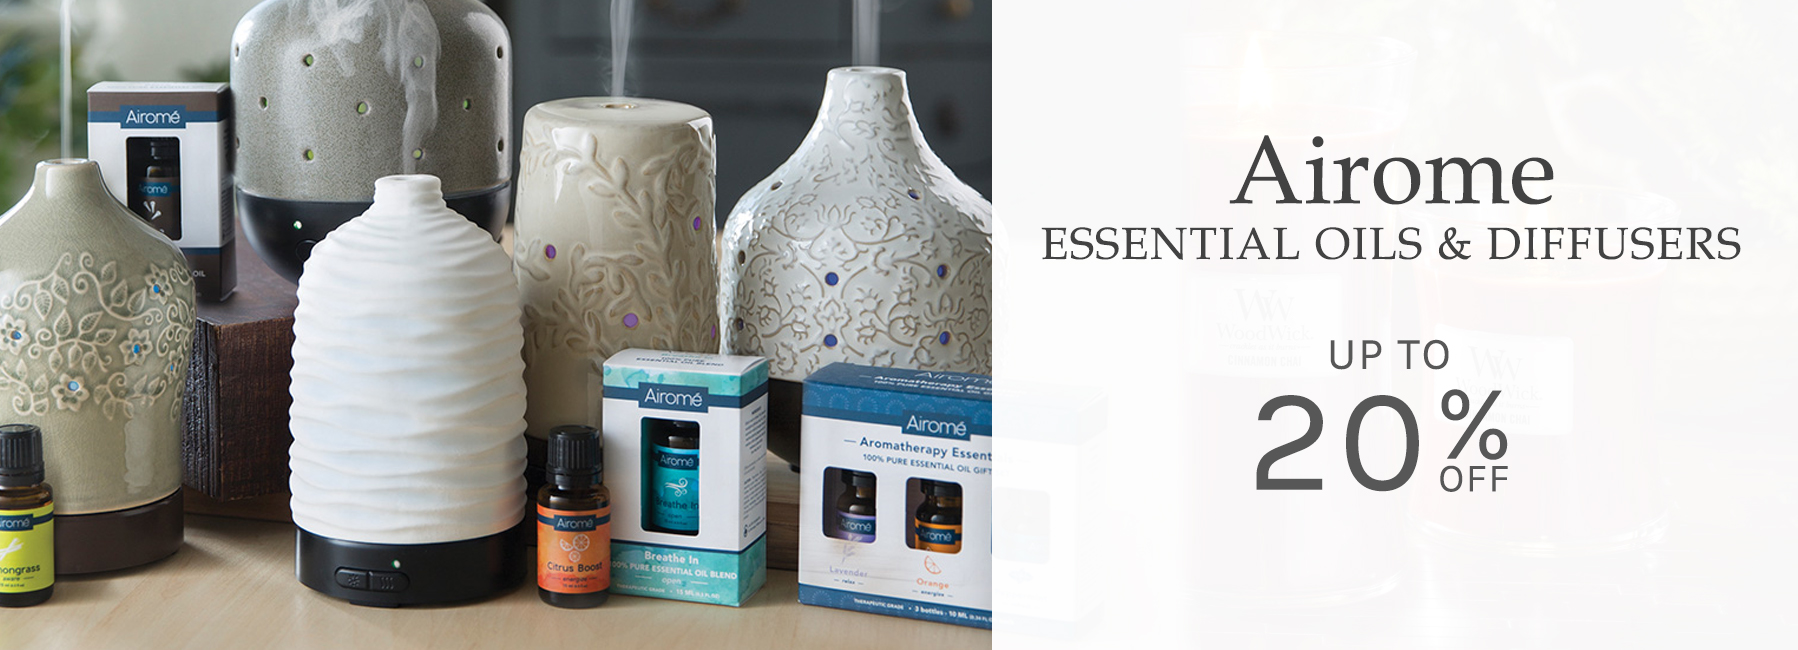 Airome - Essential Oil Diffusers and Essential Oils - Up To 20 Percent OFF